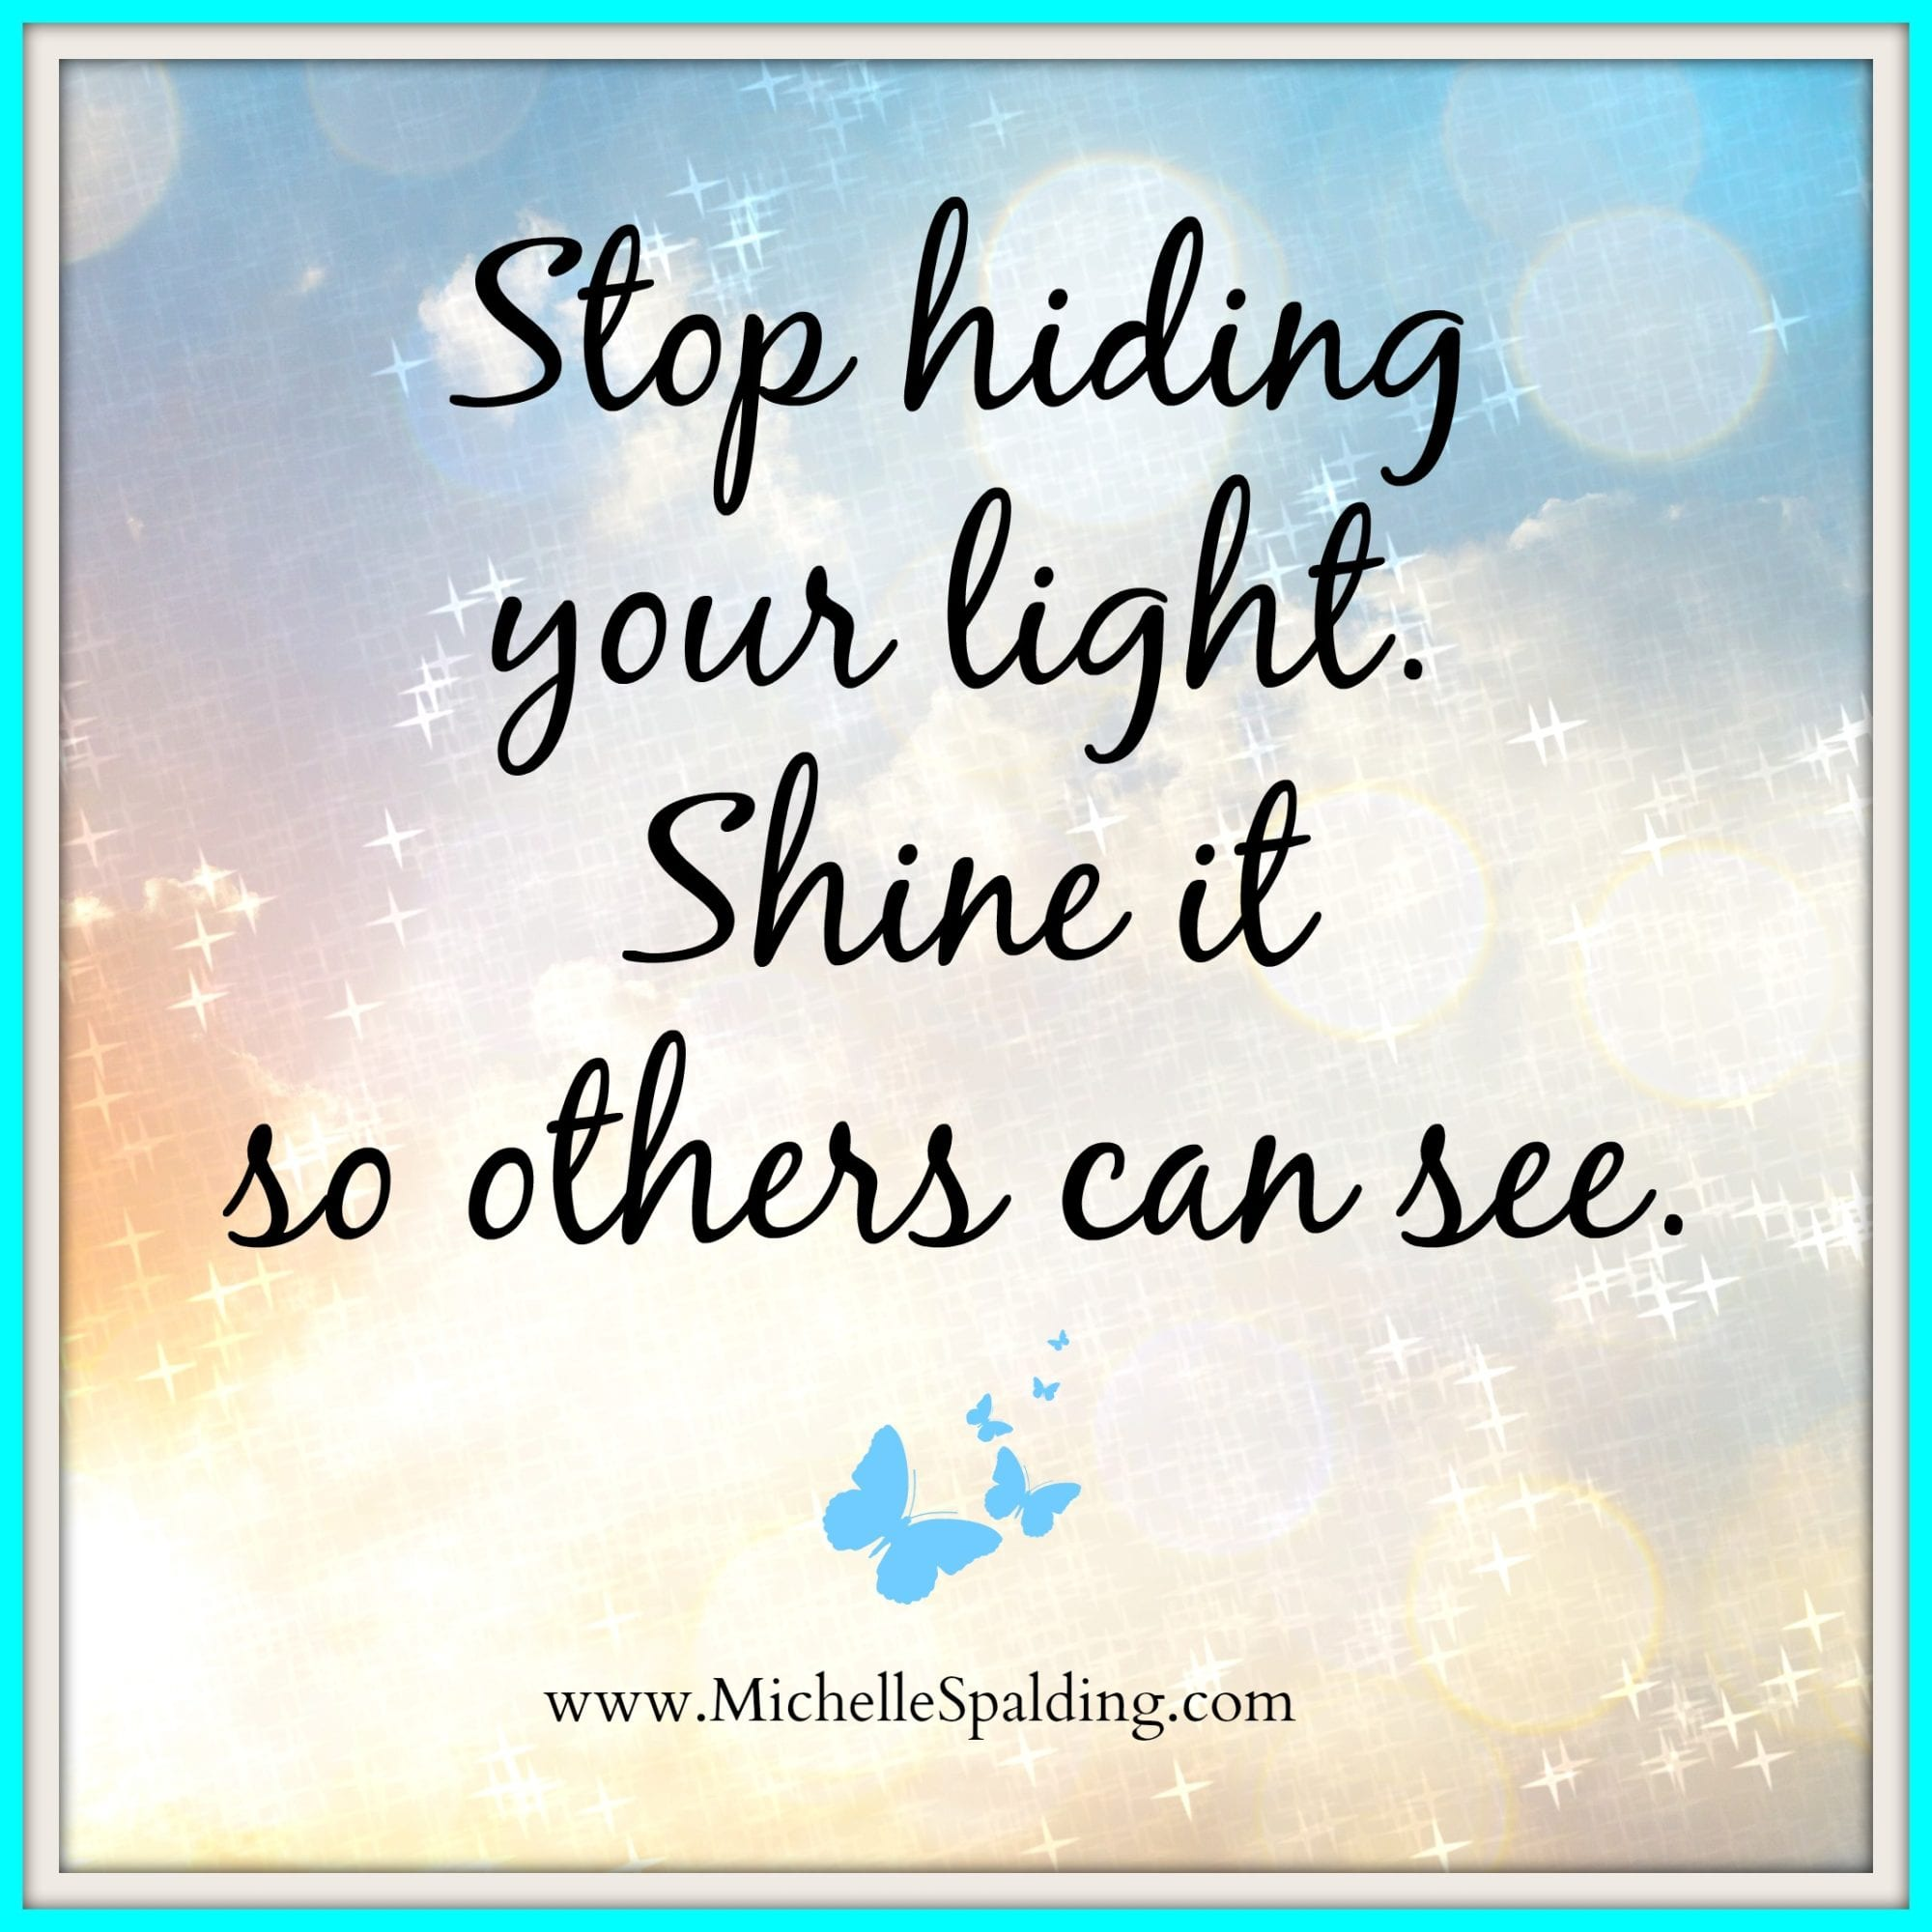 Stop hiding your light. Shine it so others can see